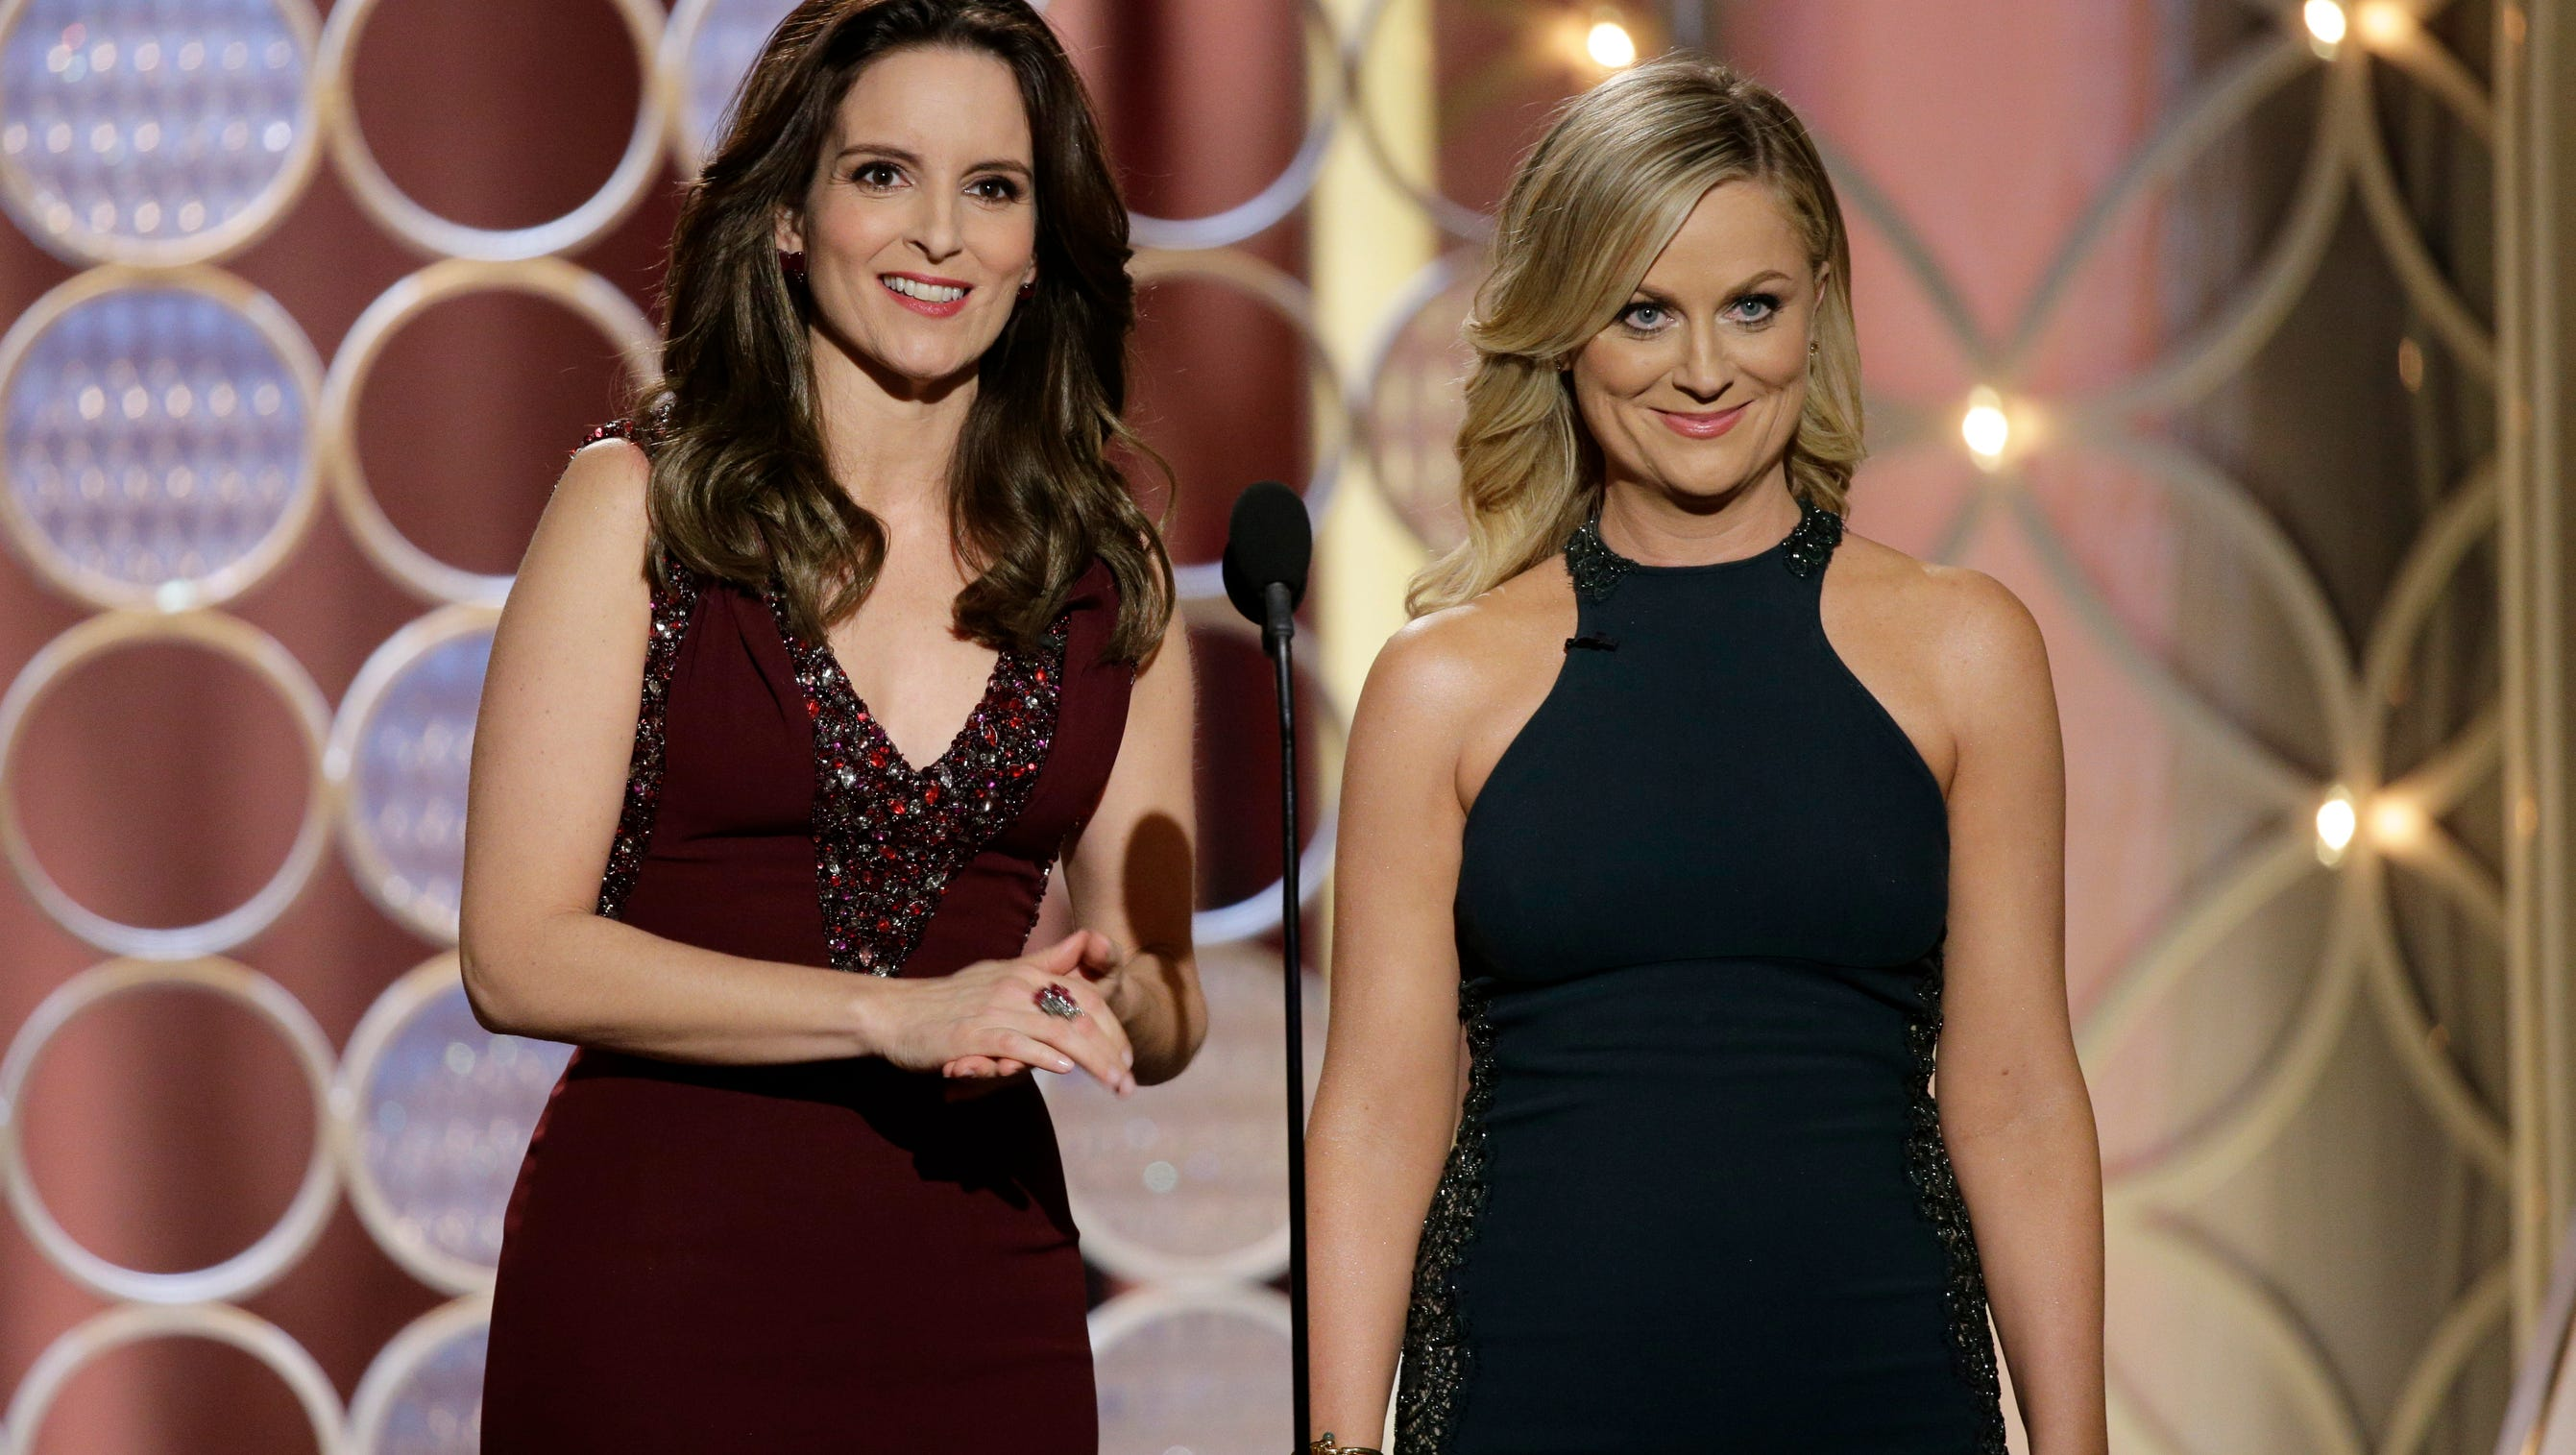 Tina Fey, left, and Amy Poehler have been big hits as Golden Globes hosts.